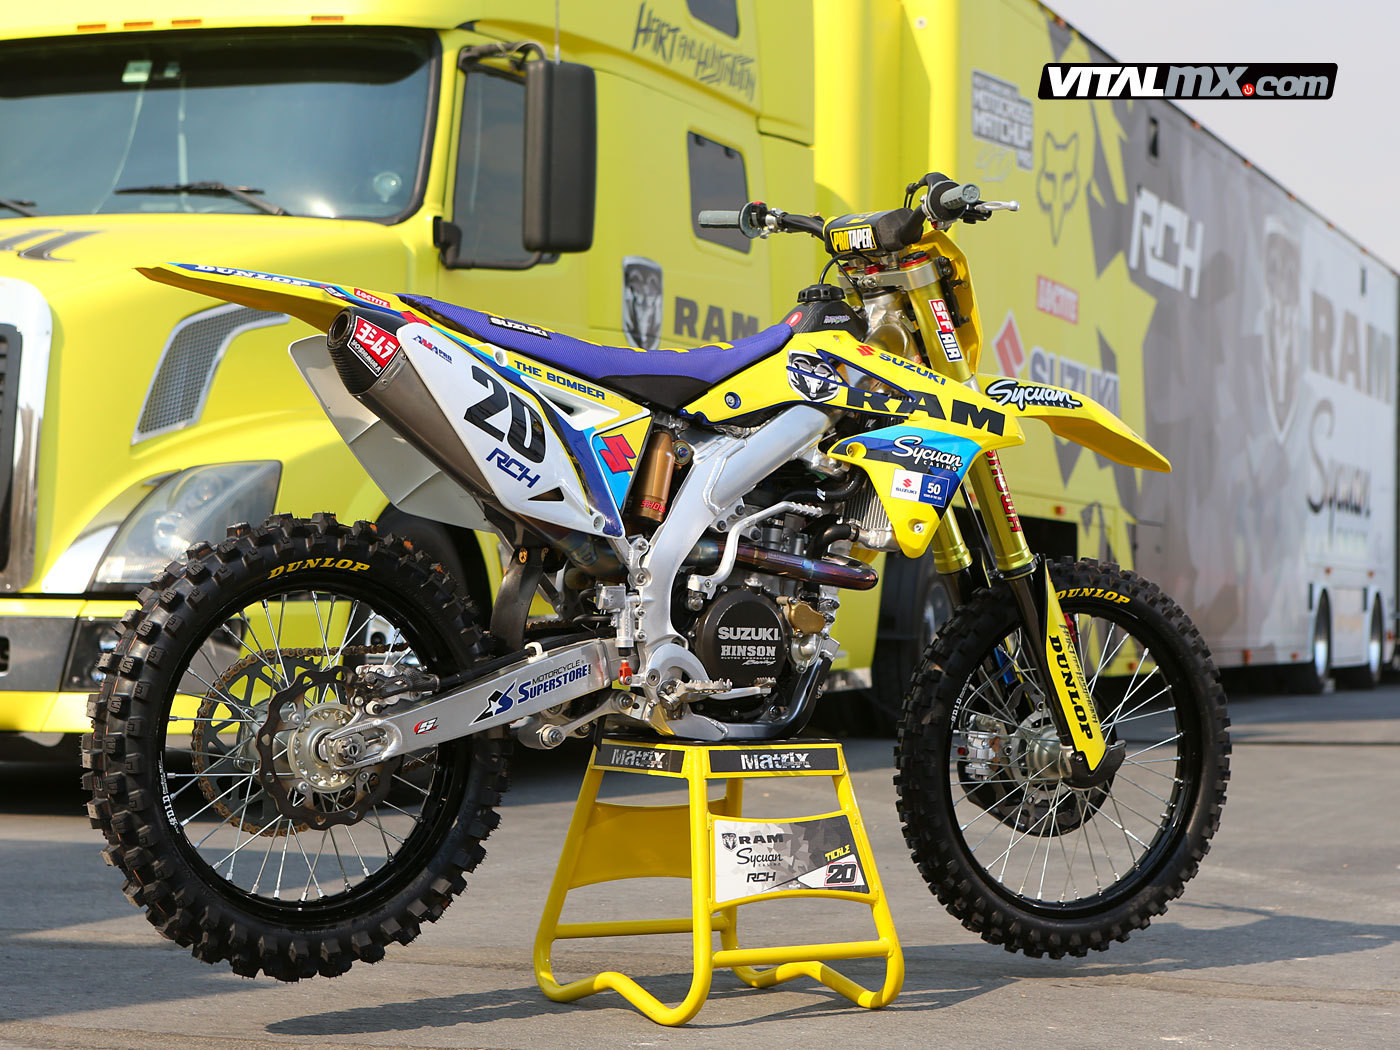 RAM / Sycuan Casino / Hart & Huntington / Bel Ray Racing Team - The Big Picture - Motocross Pictures - Vital MX